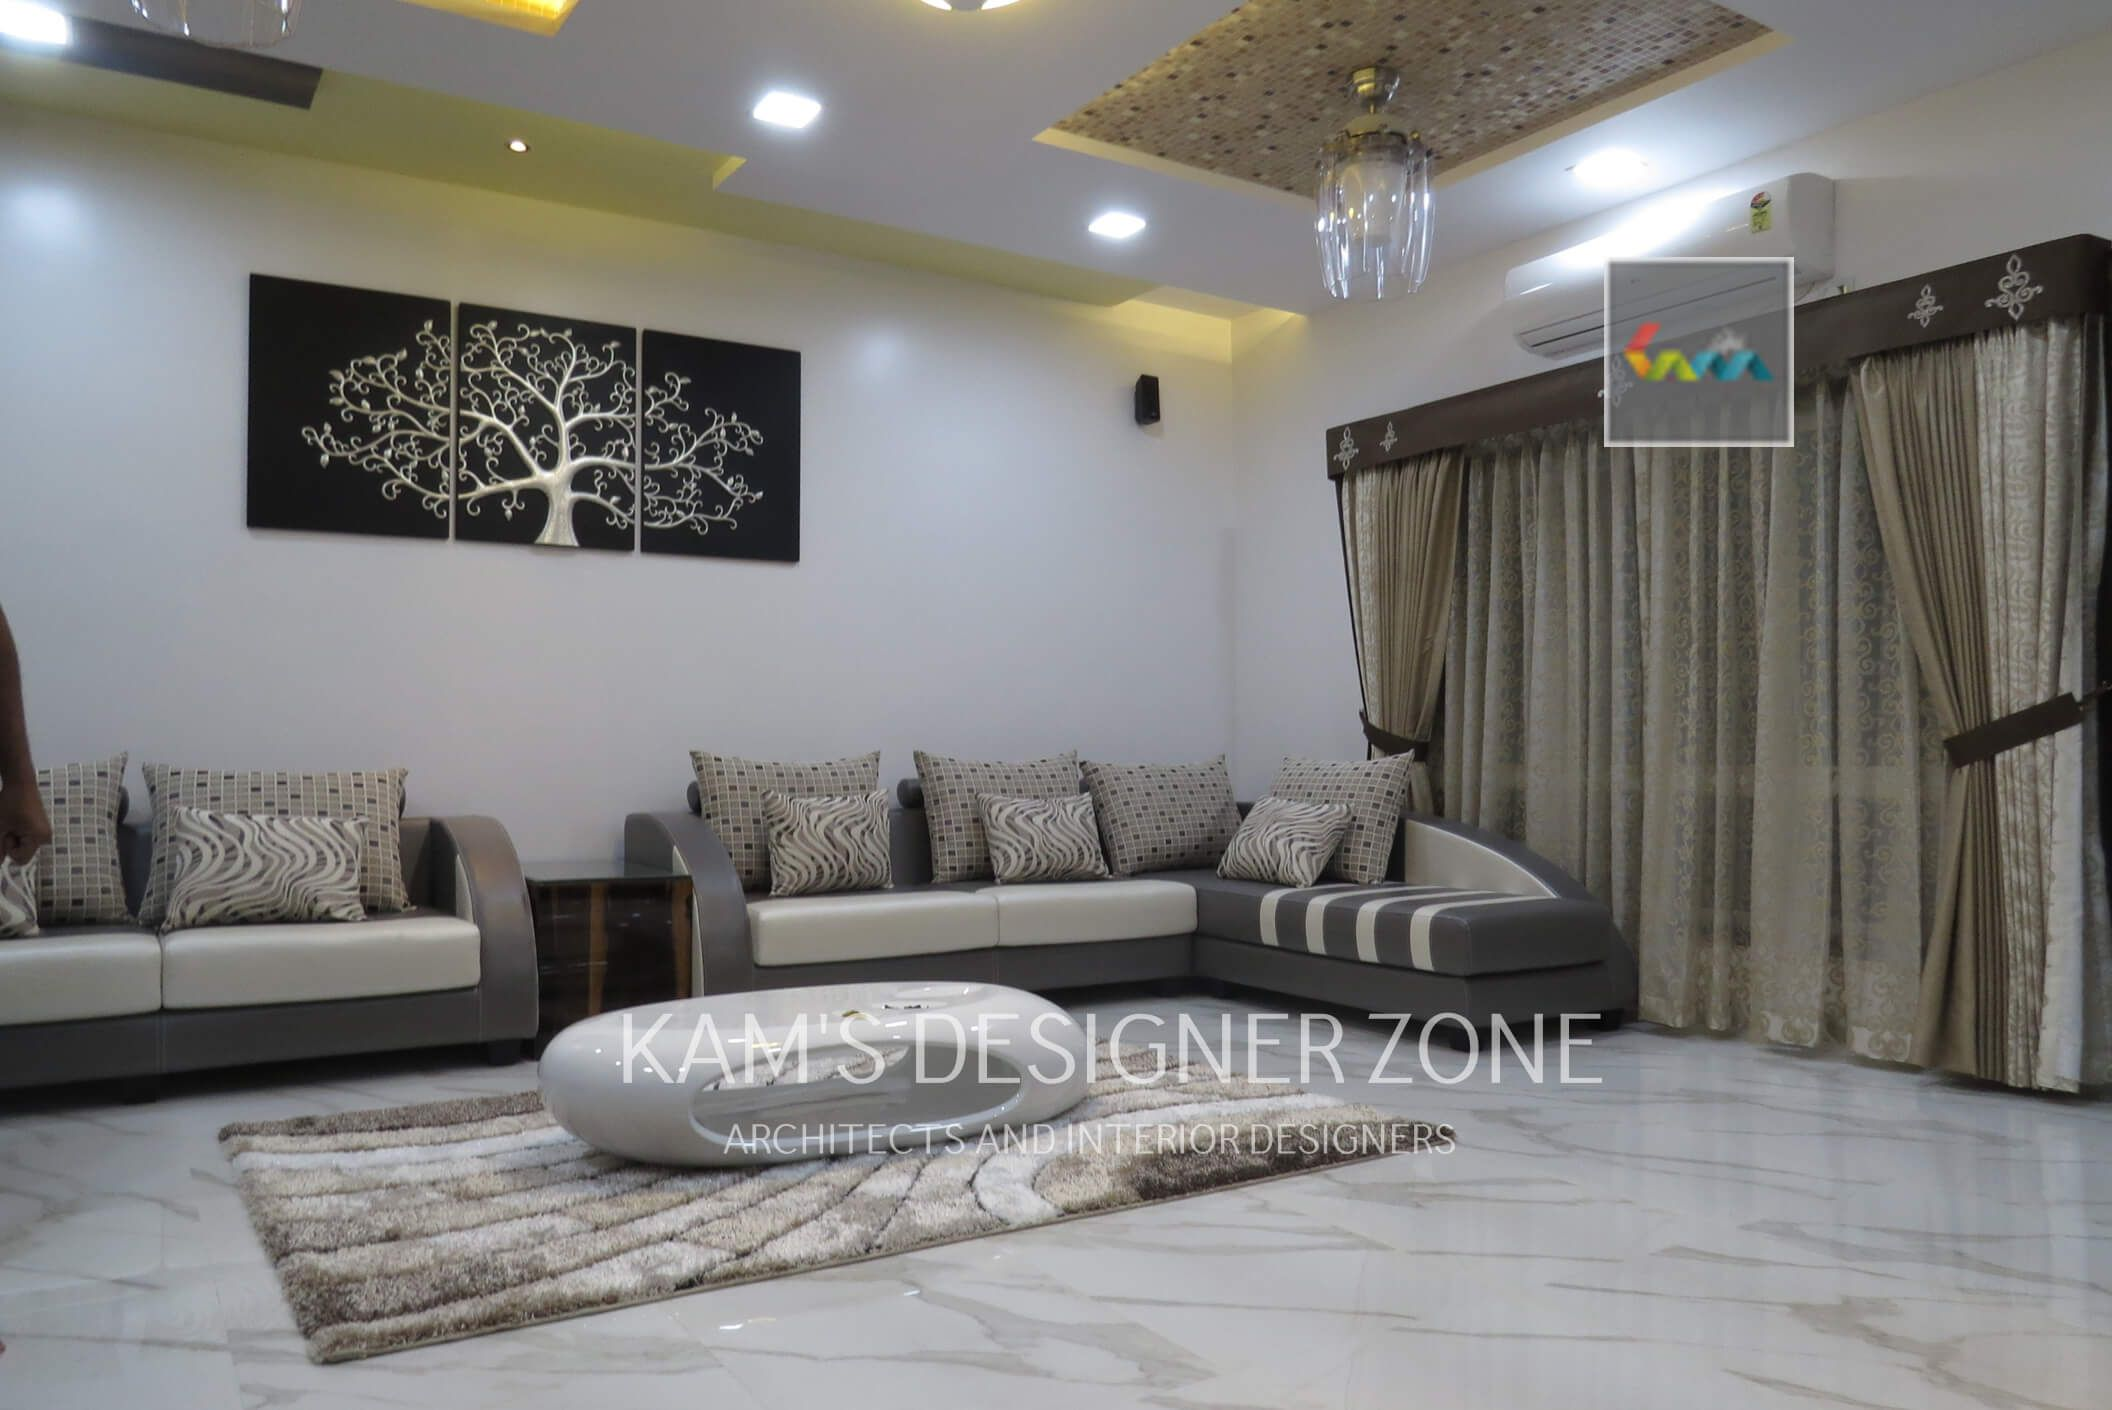 Kam S Designer Zone Offers U Home Commercial Interior Design In Affordable Price With Innovativ Living Room Design Modern Living Room Designs Interior Design